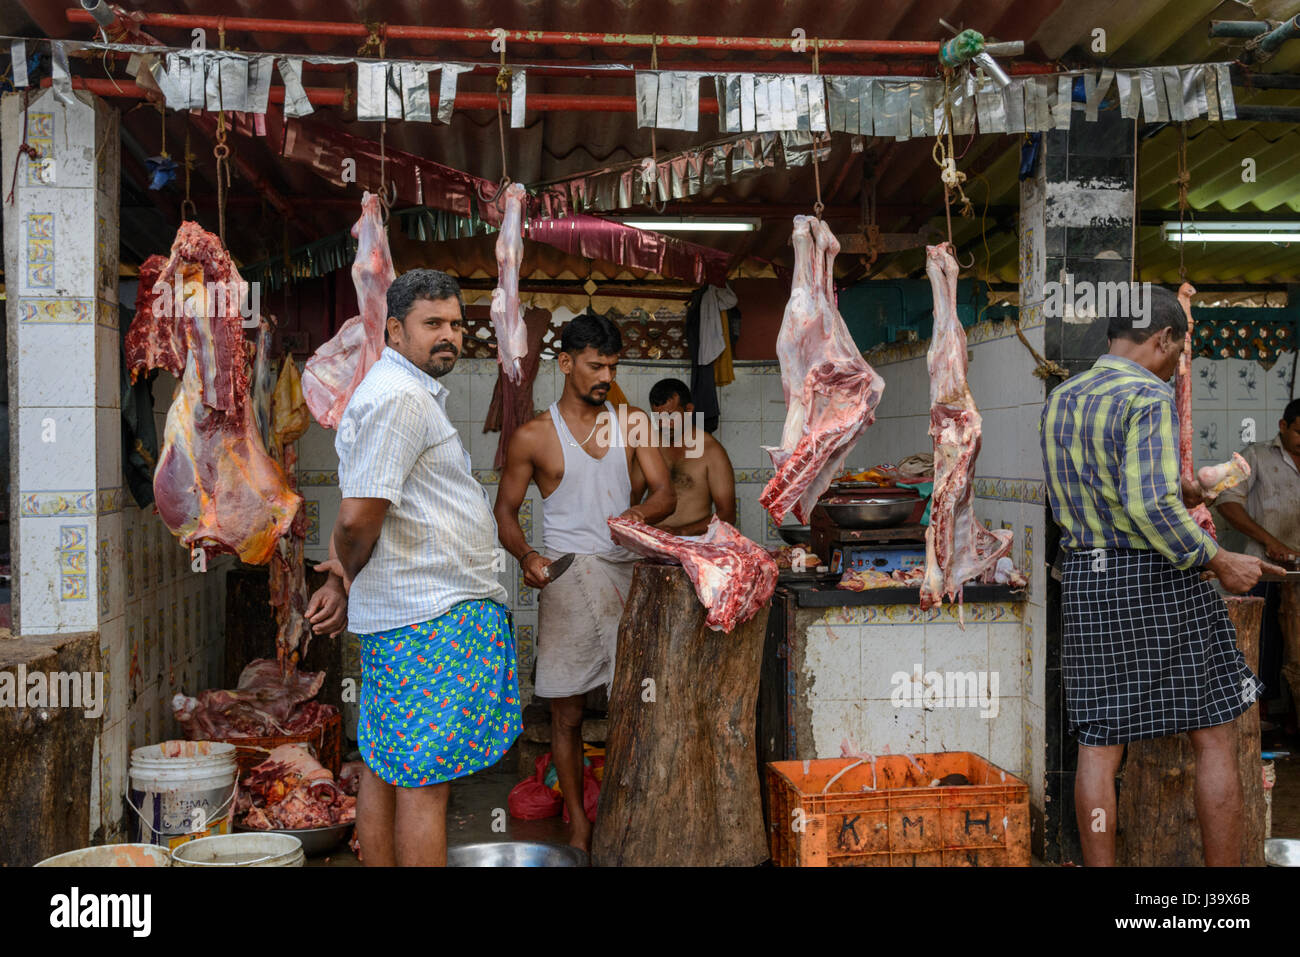 meat market stock images - photo #12